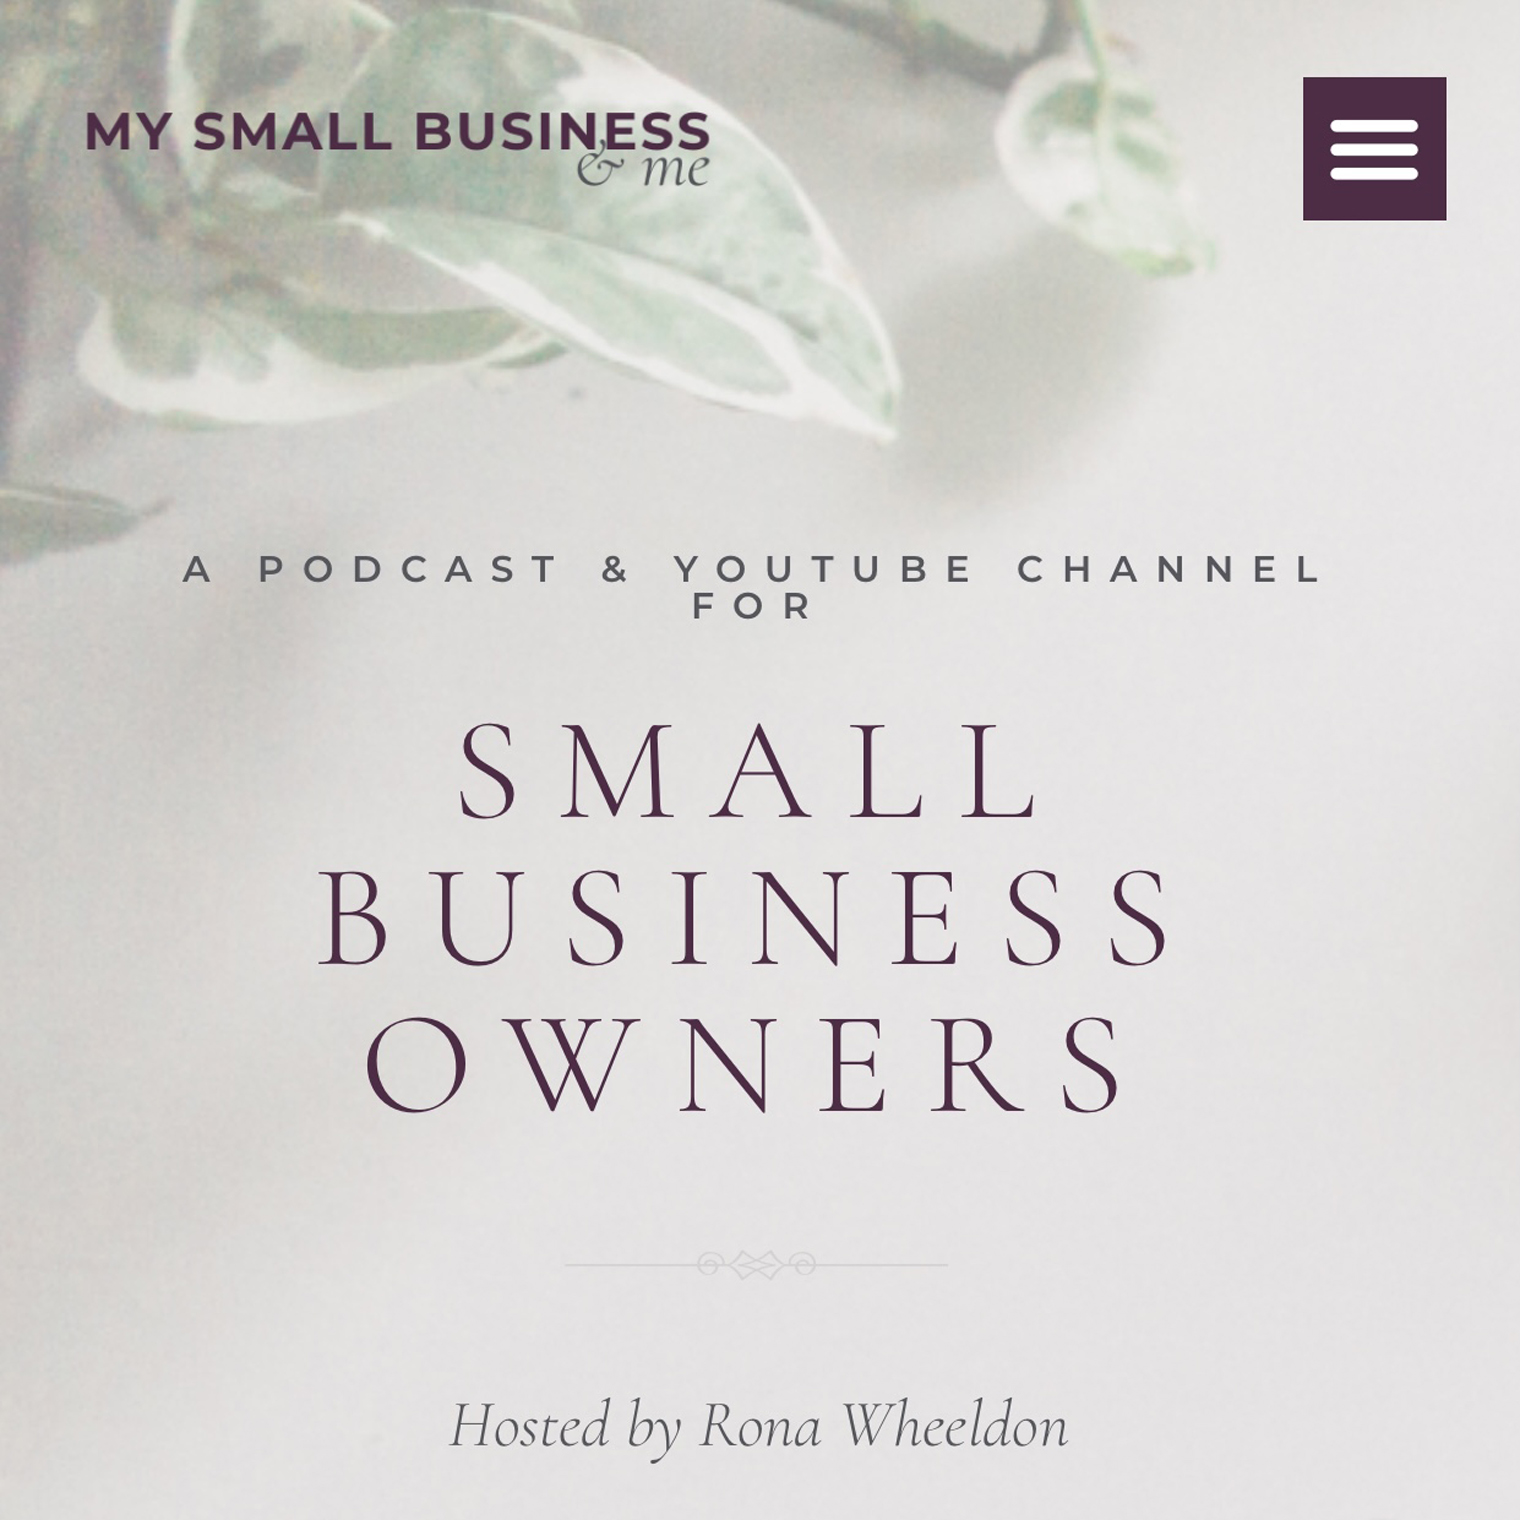 A Podcast & YouTube Channel for Small Business Owners - My Small Business & Me